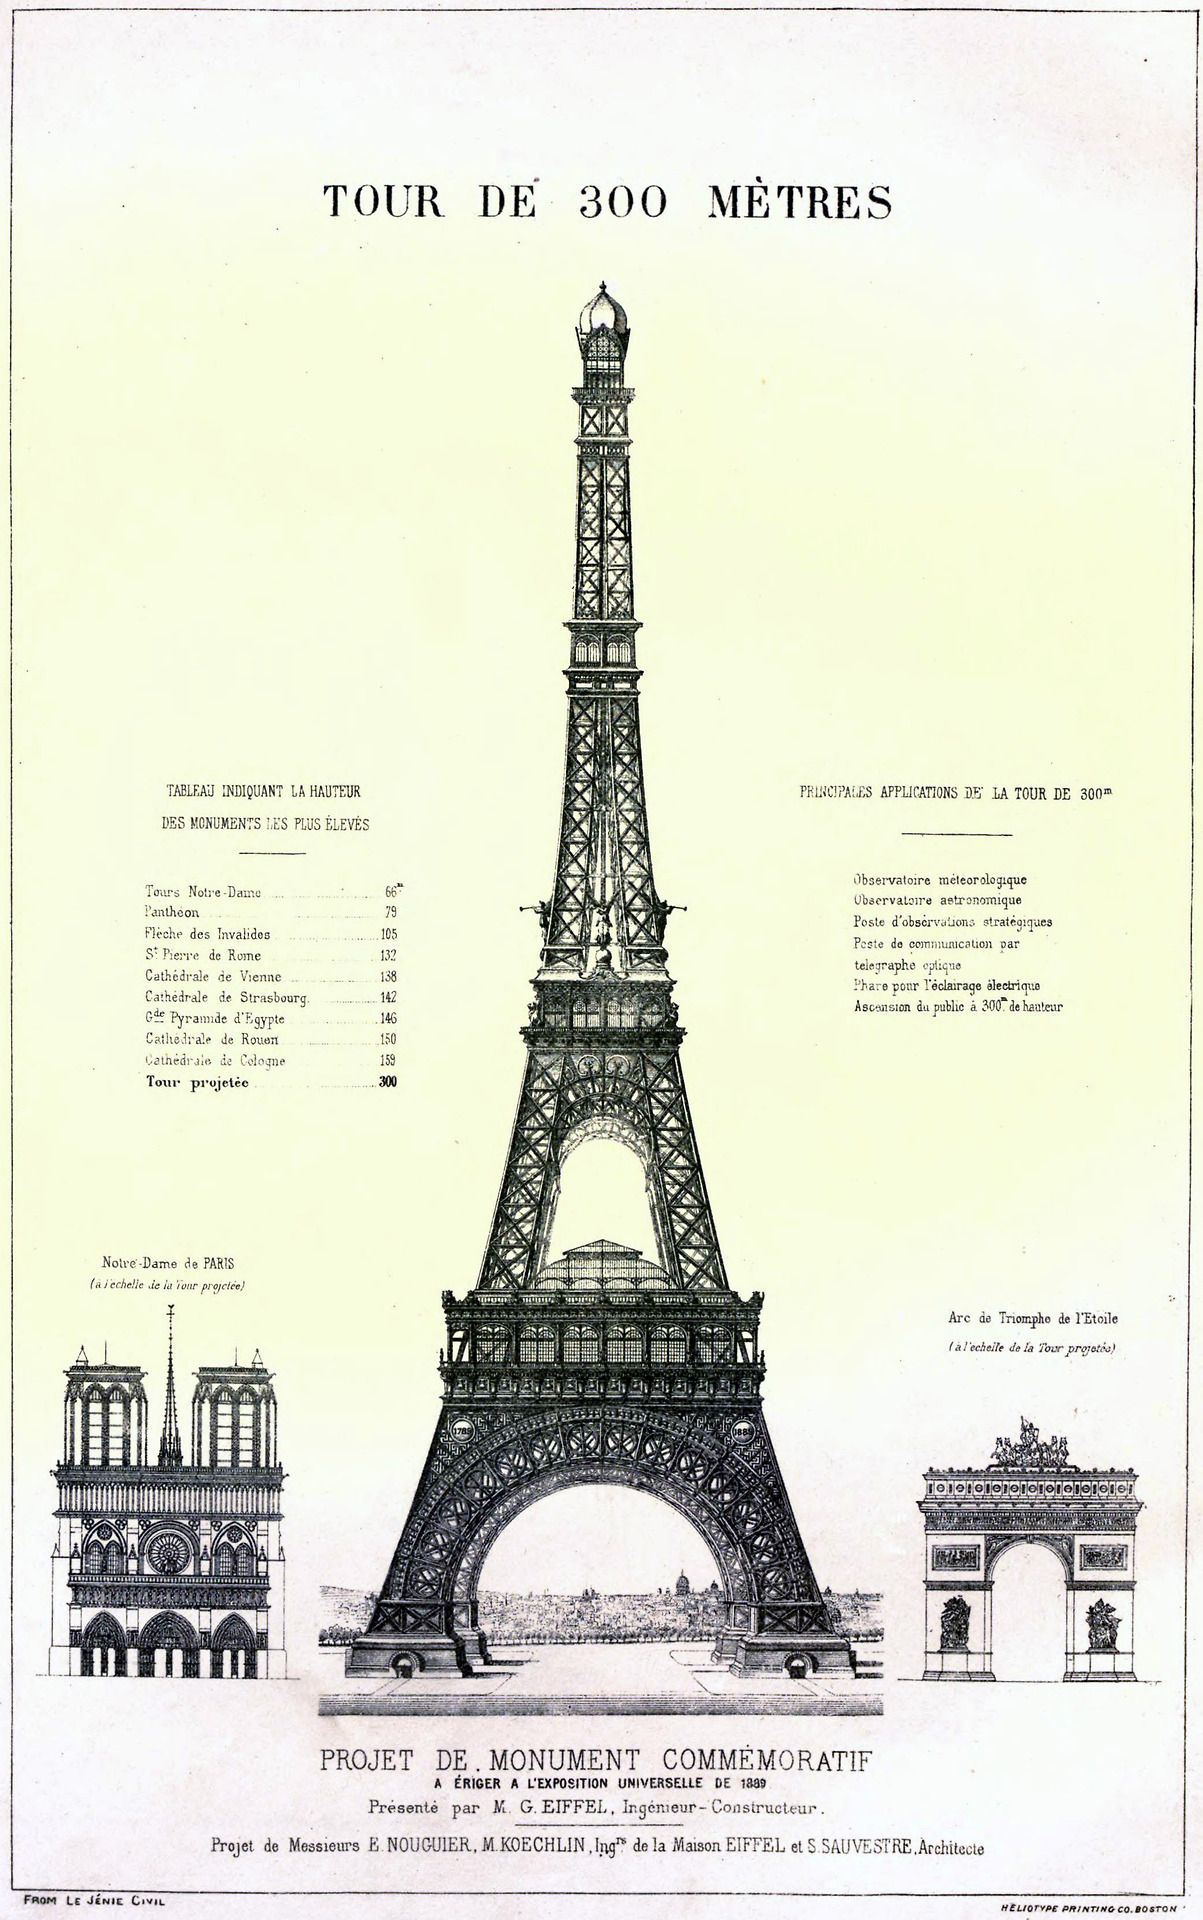 How to write a paper comparing Architecture between USA and another country?